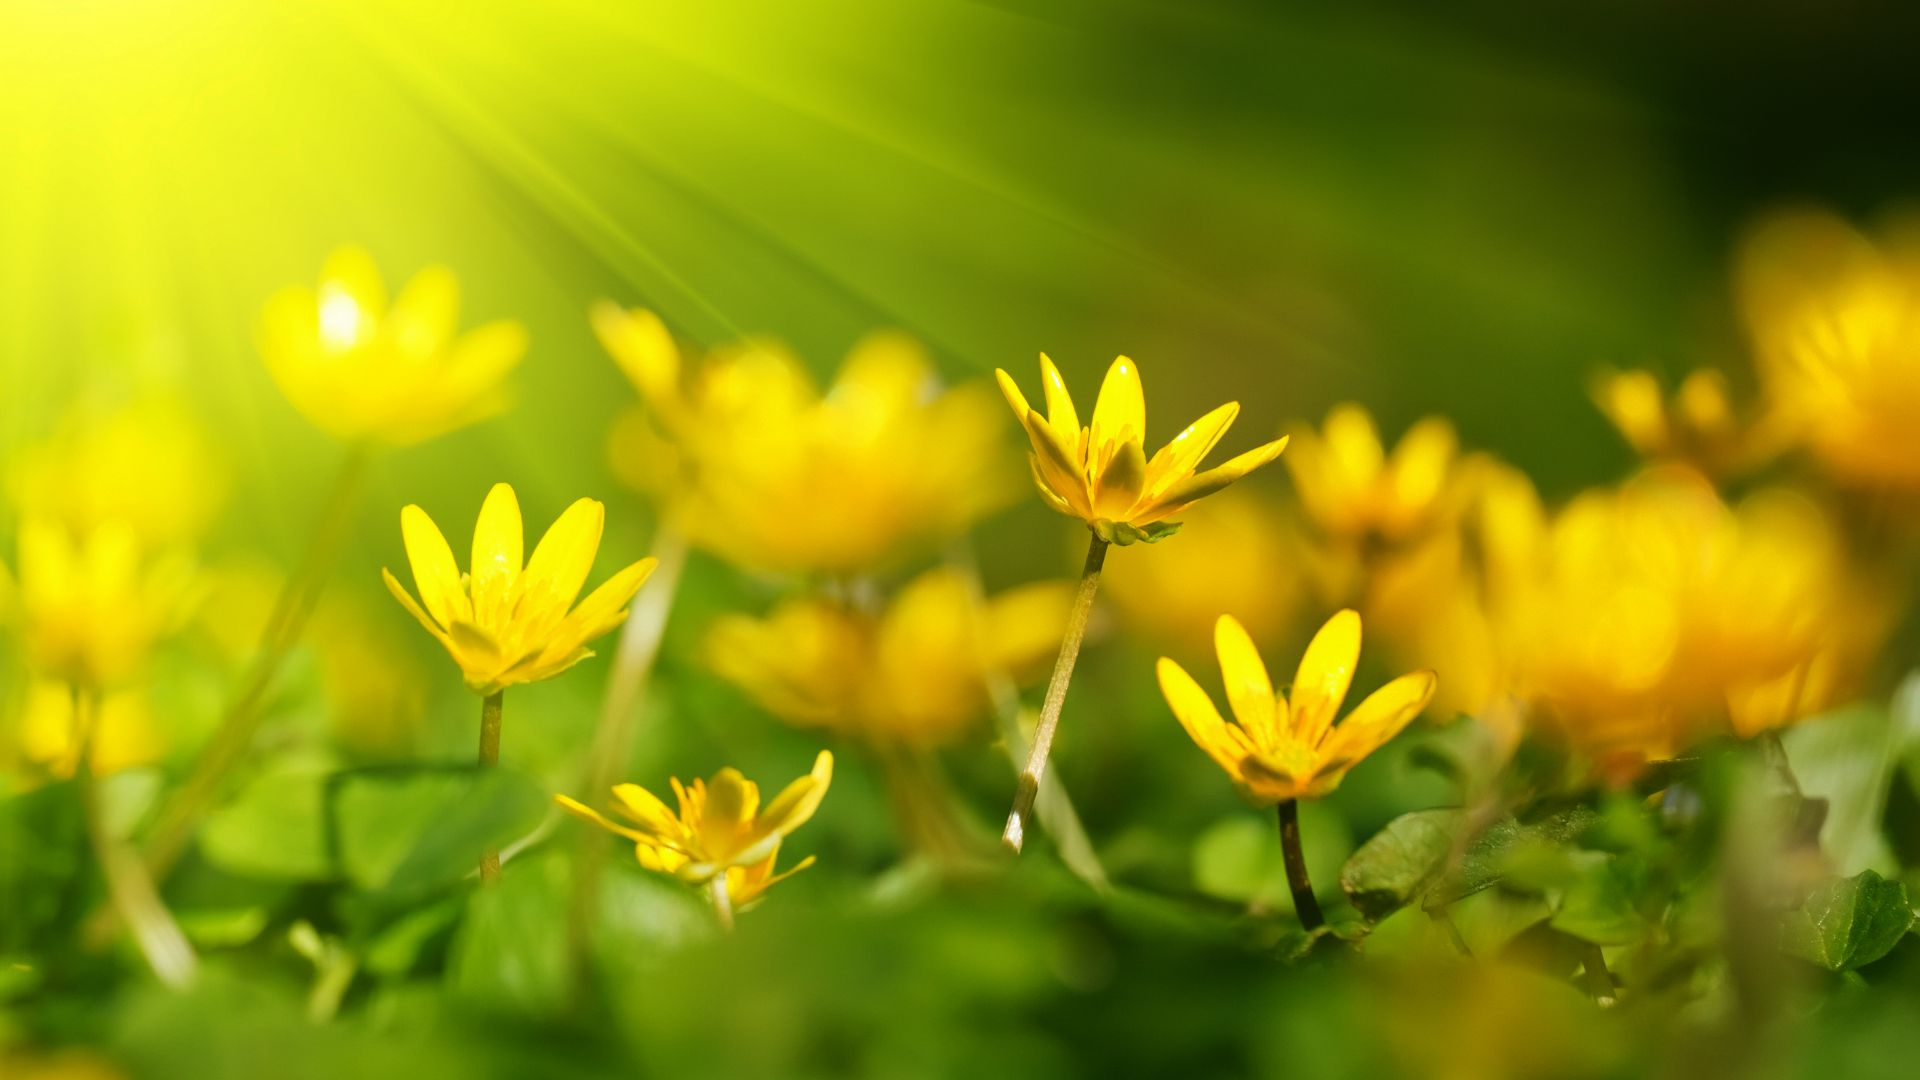 Цветы, 5k, 4k, желтый, зеленая трава, Flowers, 5k, 4k wallpaper, 8k, sunray, yellow, green grass (horizontal)